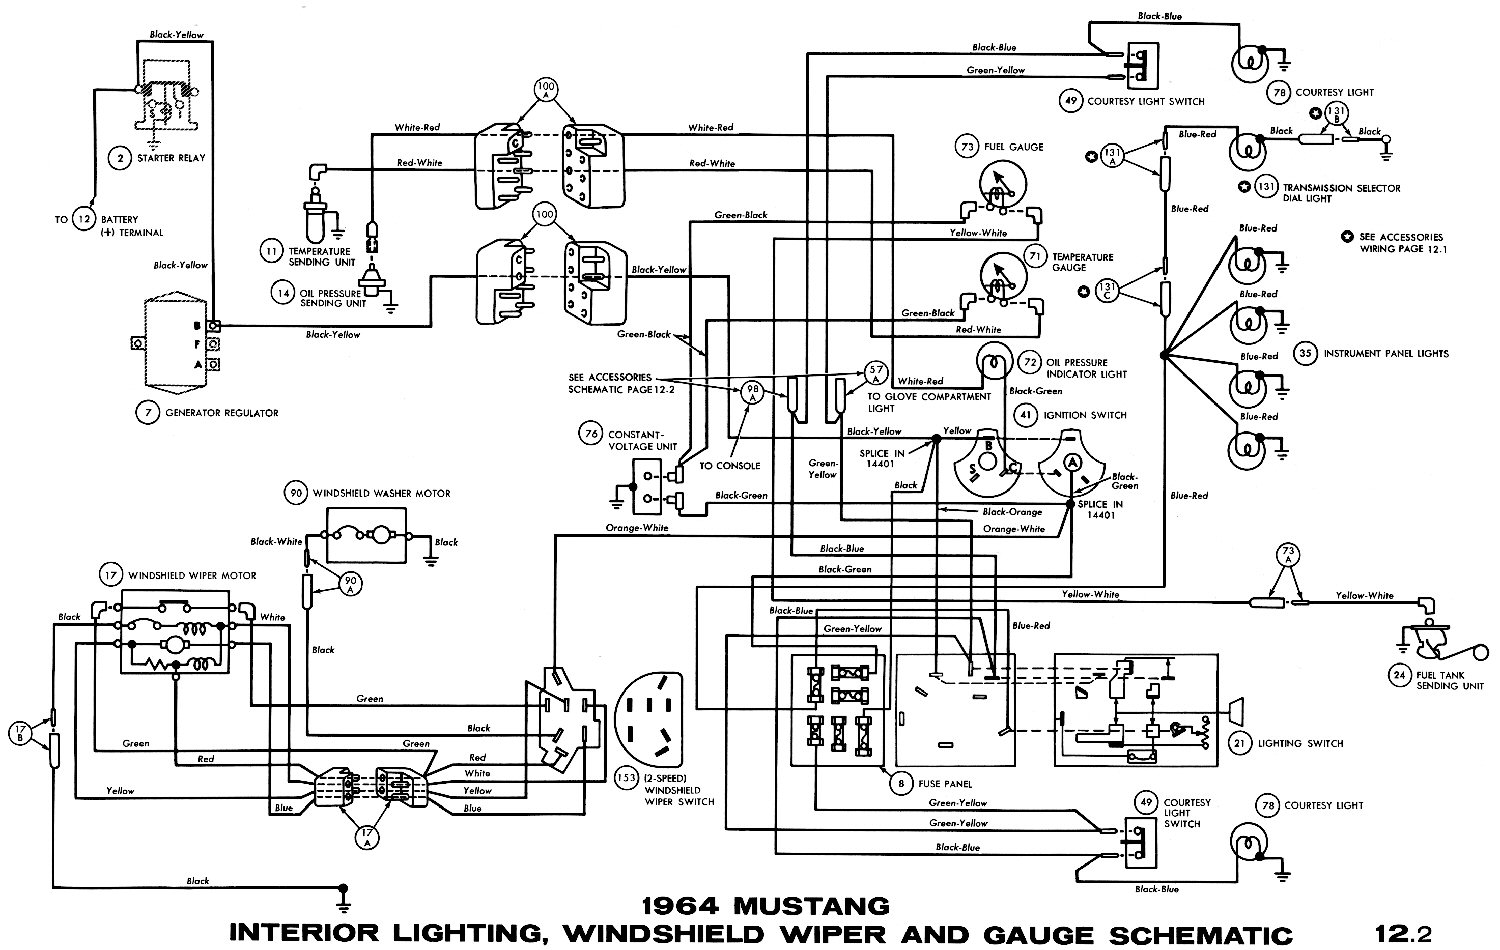 1964k 1964 mustang wiring diagrams average joe restoration 1970 mustang radio wiring diagram at virtualis.co